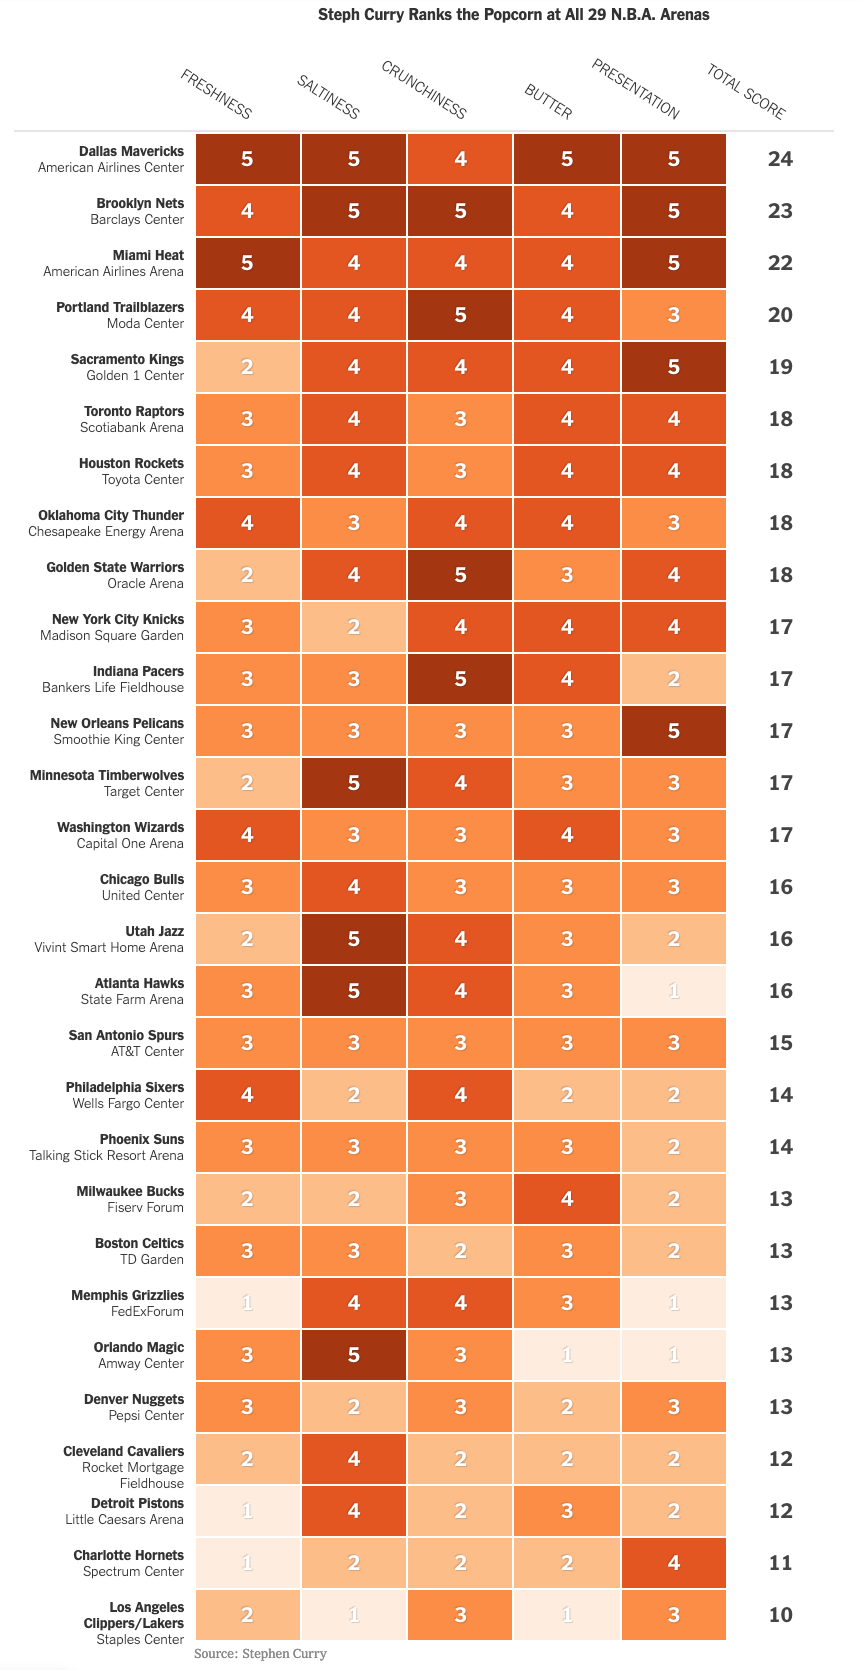 MakeoverMonday: Which NBA arena makes Stephen Curry's